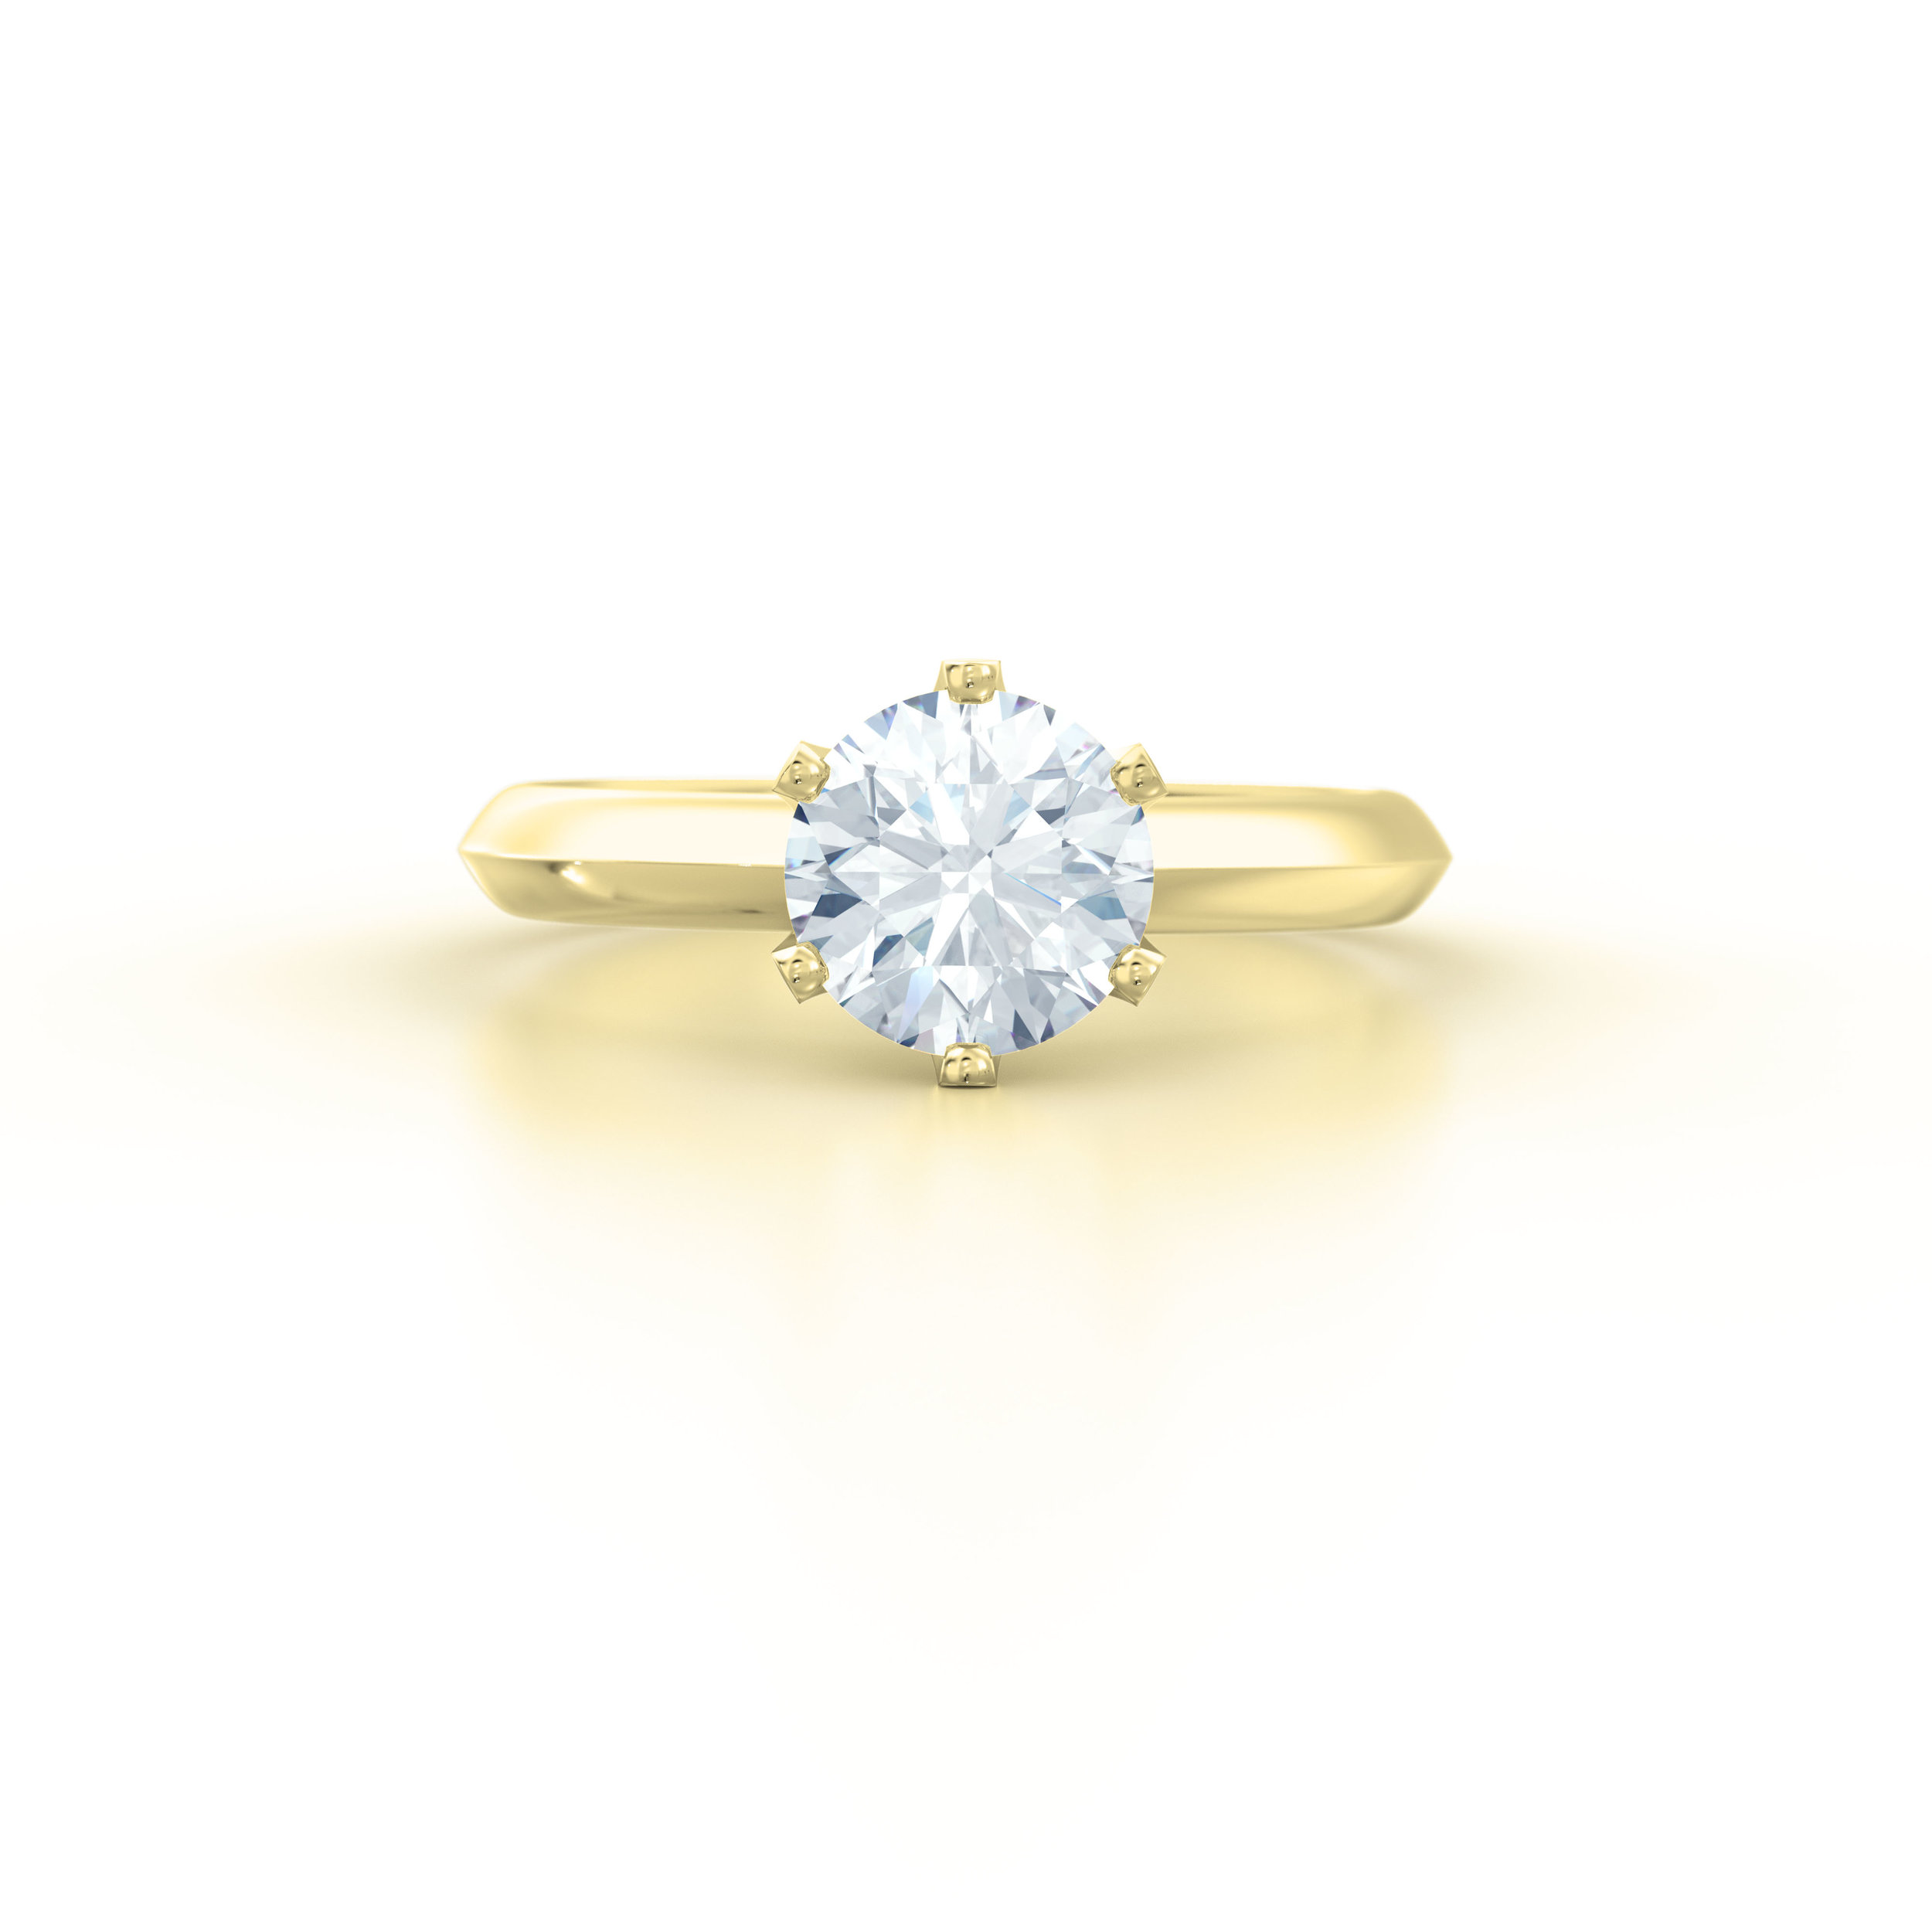 Six Claw Solitaire Engagement Ring | Hatton Garden